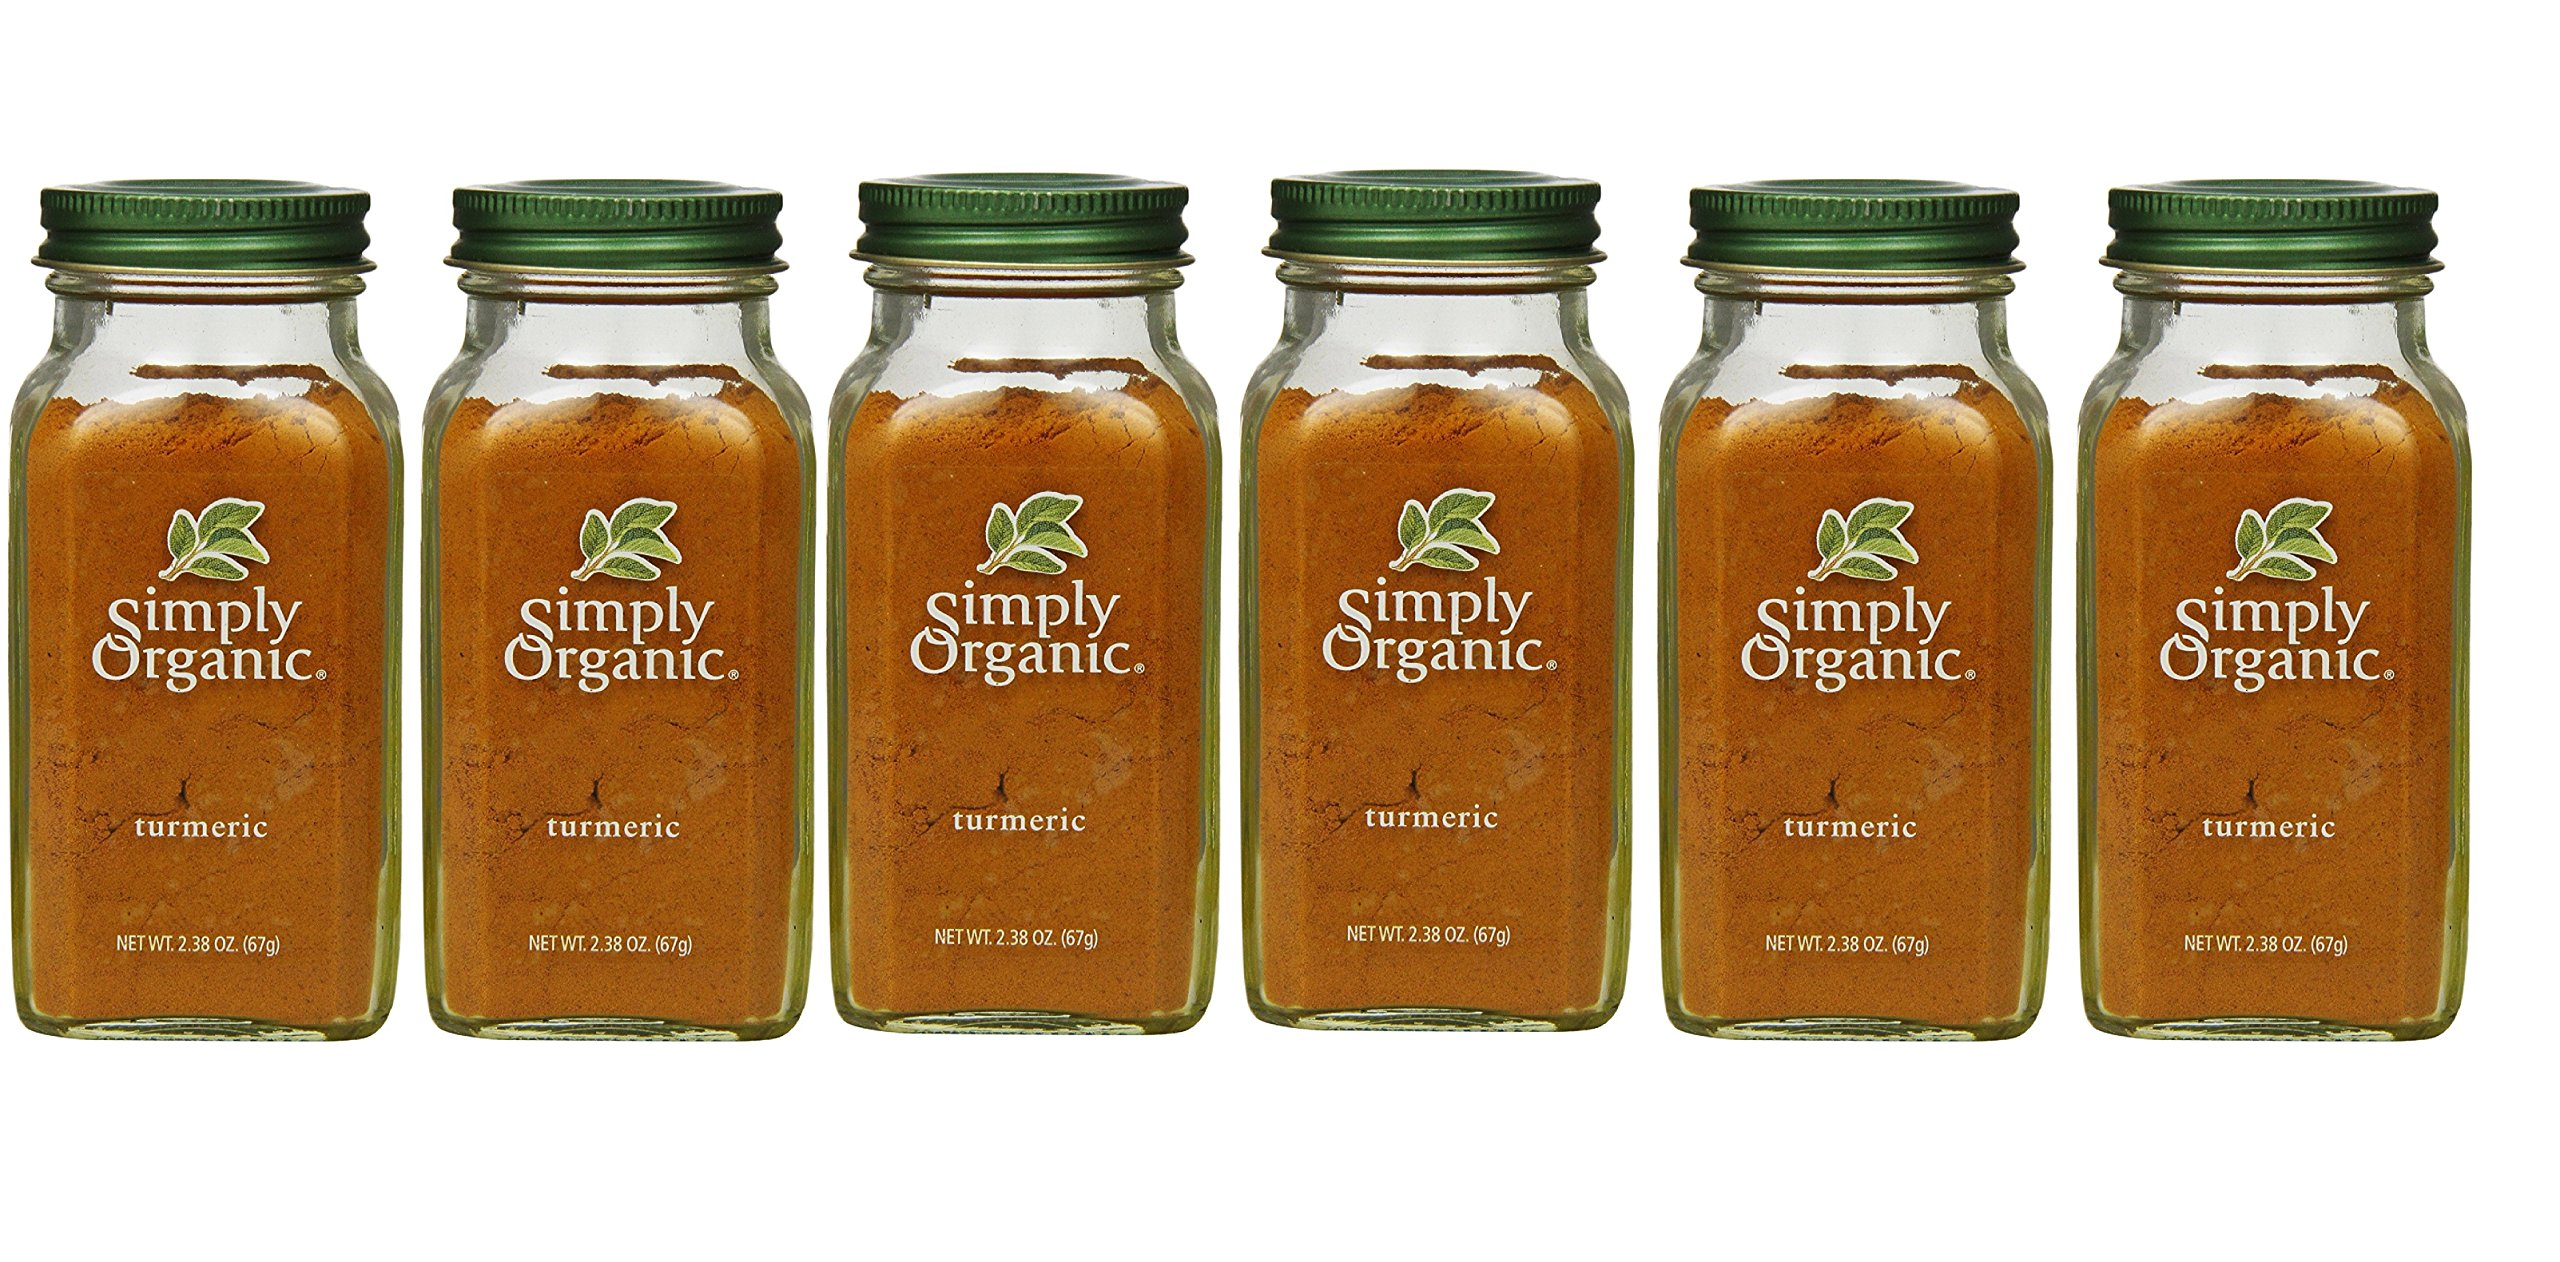 Simply Organic Turmeric Root Ground Certified Organic, 2.38-Ounce Container (6 Bottles)